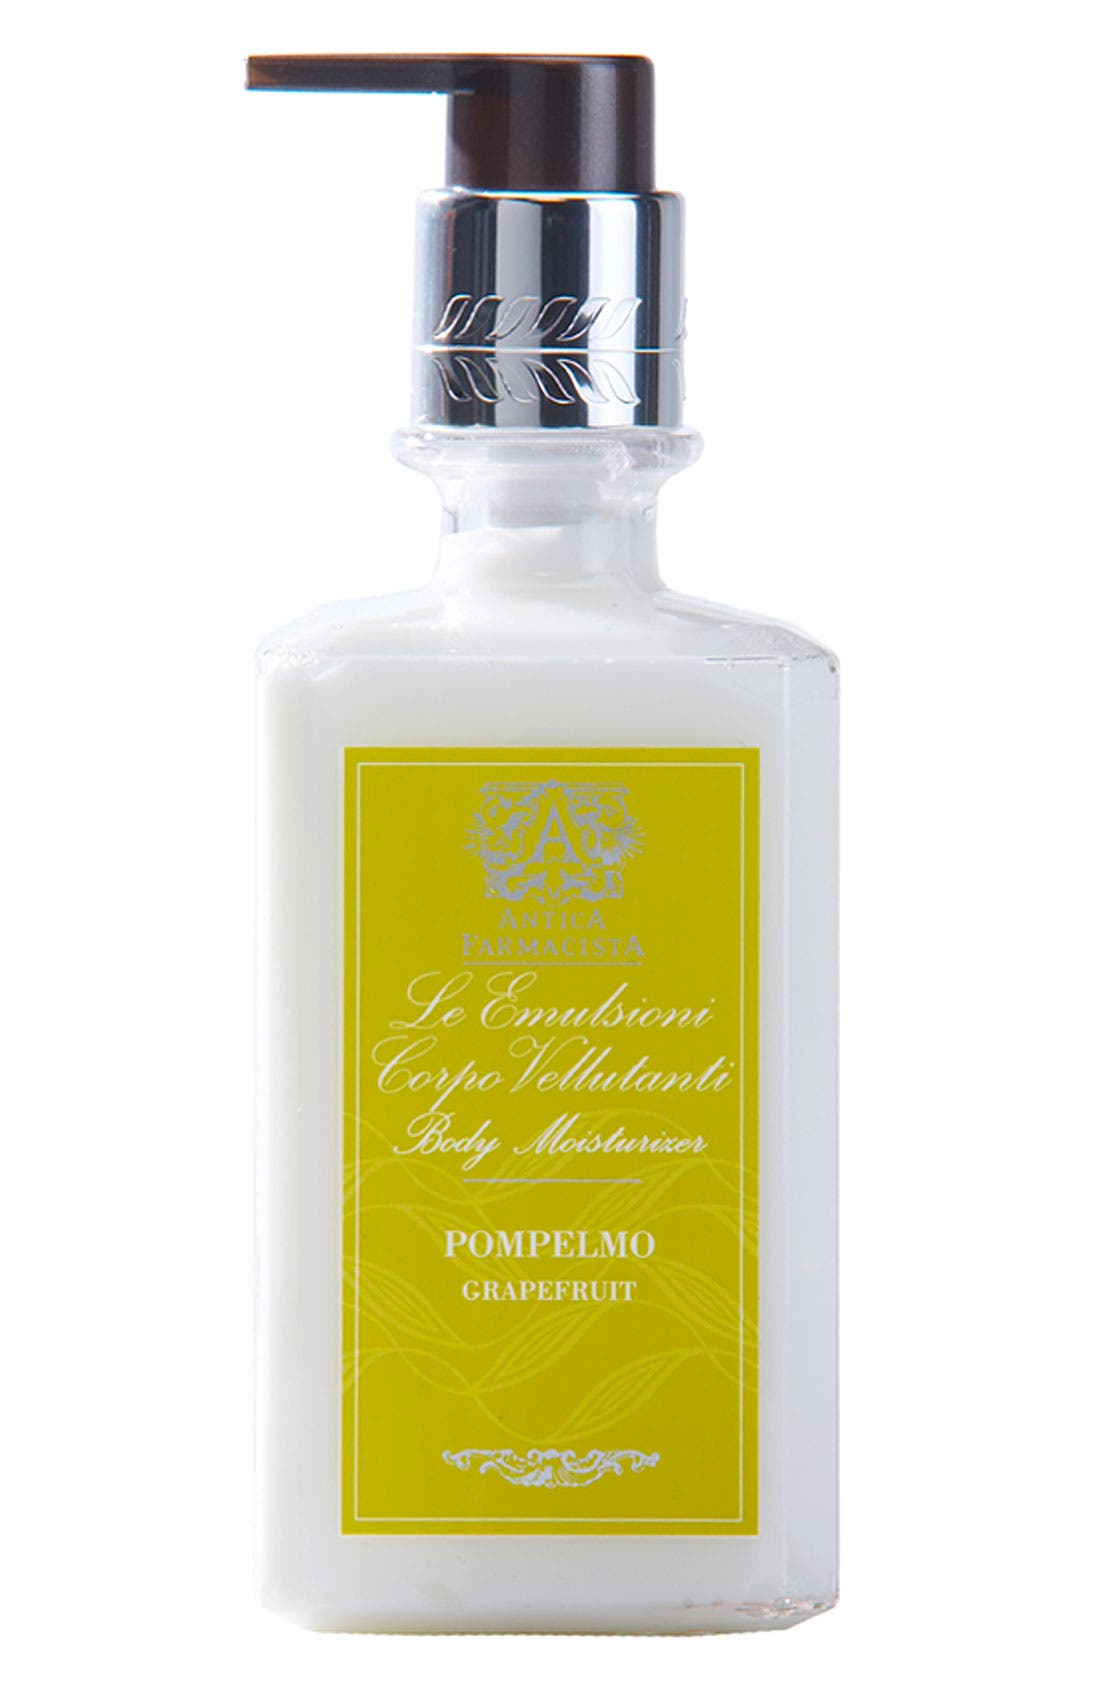 Antica Farmacista 'Grapefruit' Body Moisturizer